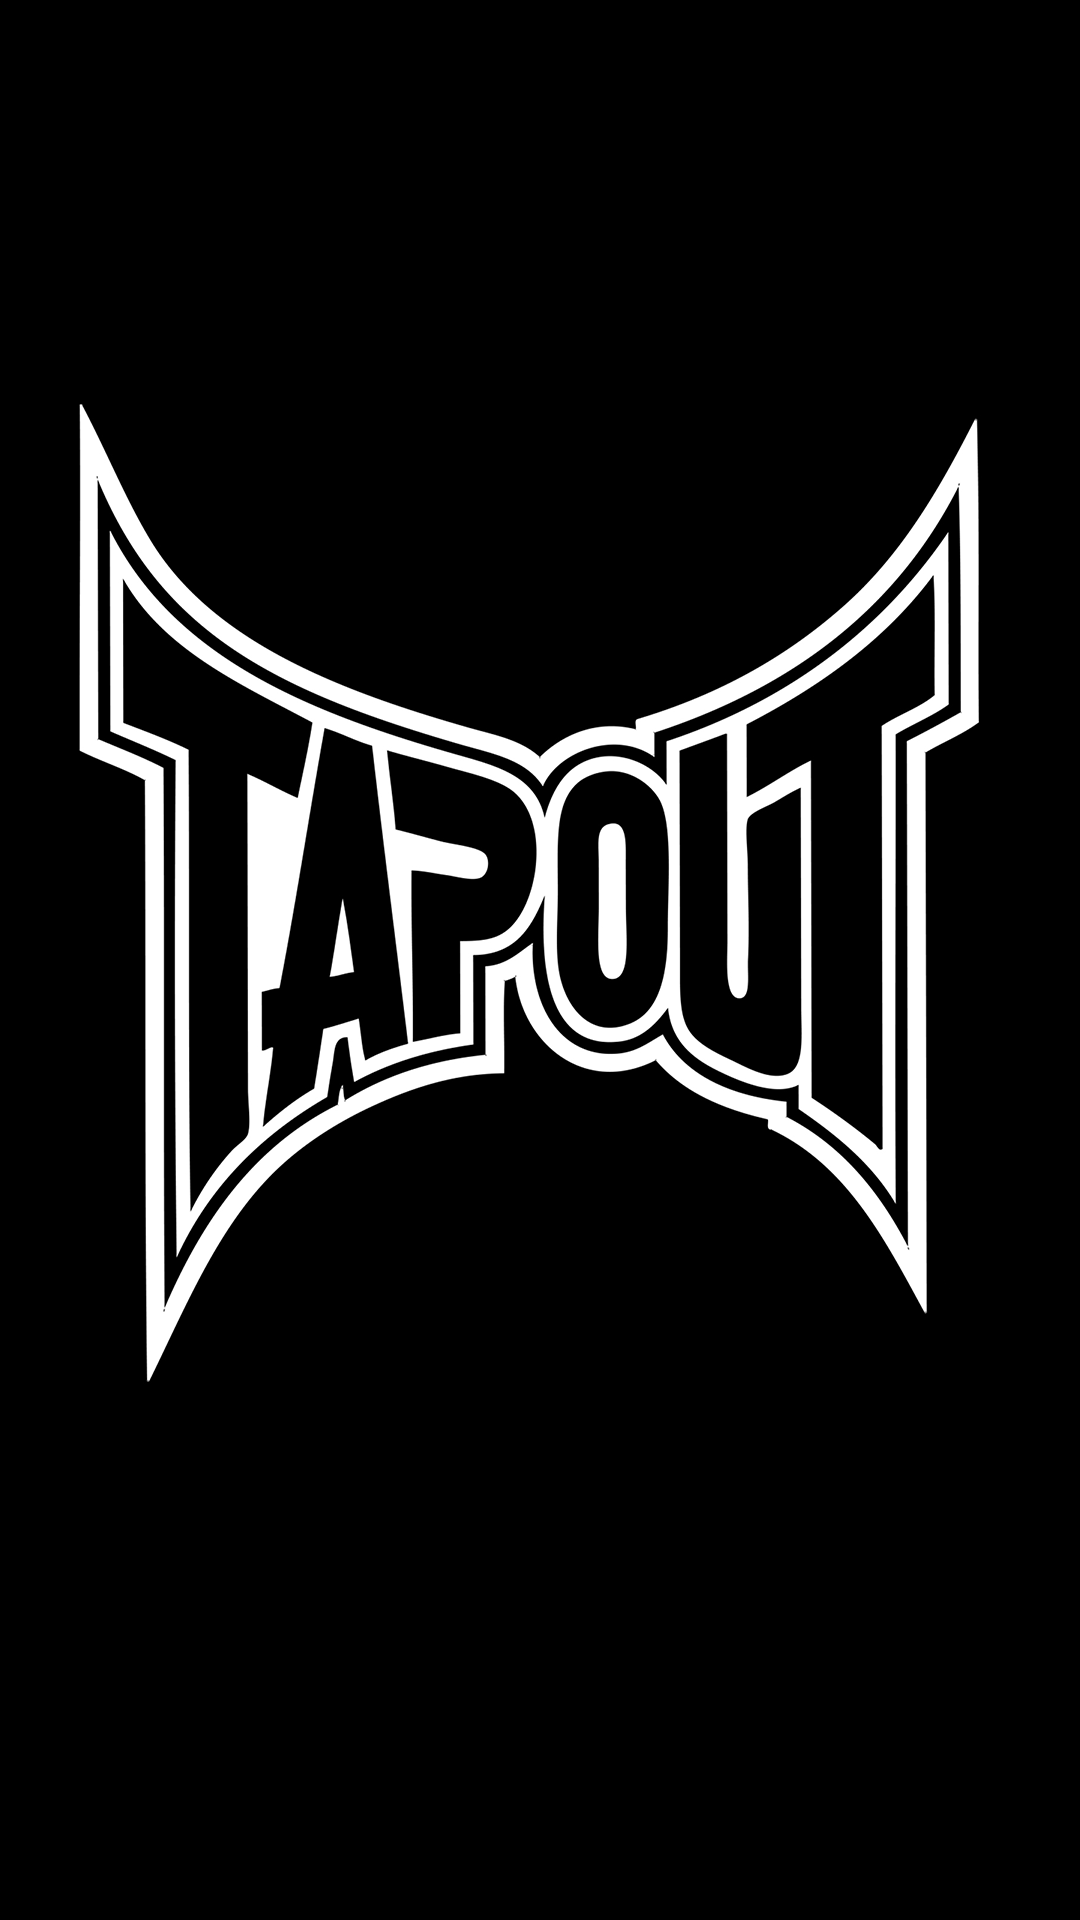 free hd tapout logo iphone wallpaper for download 0262